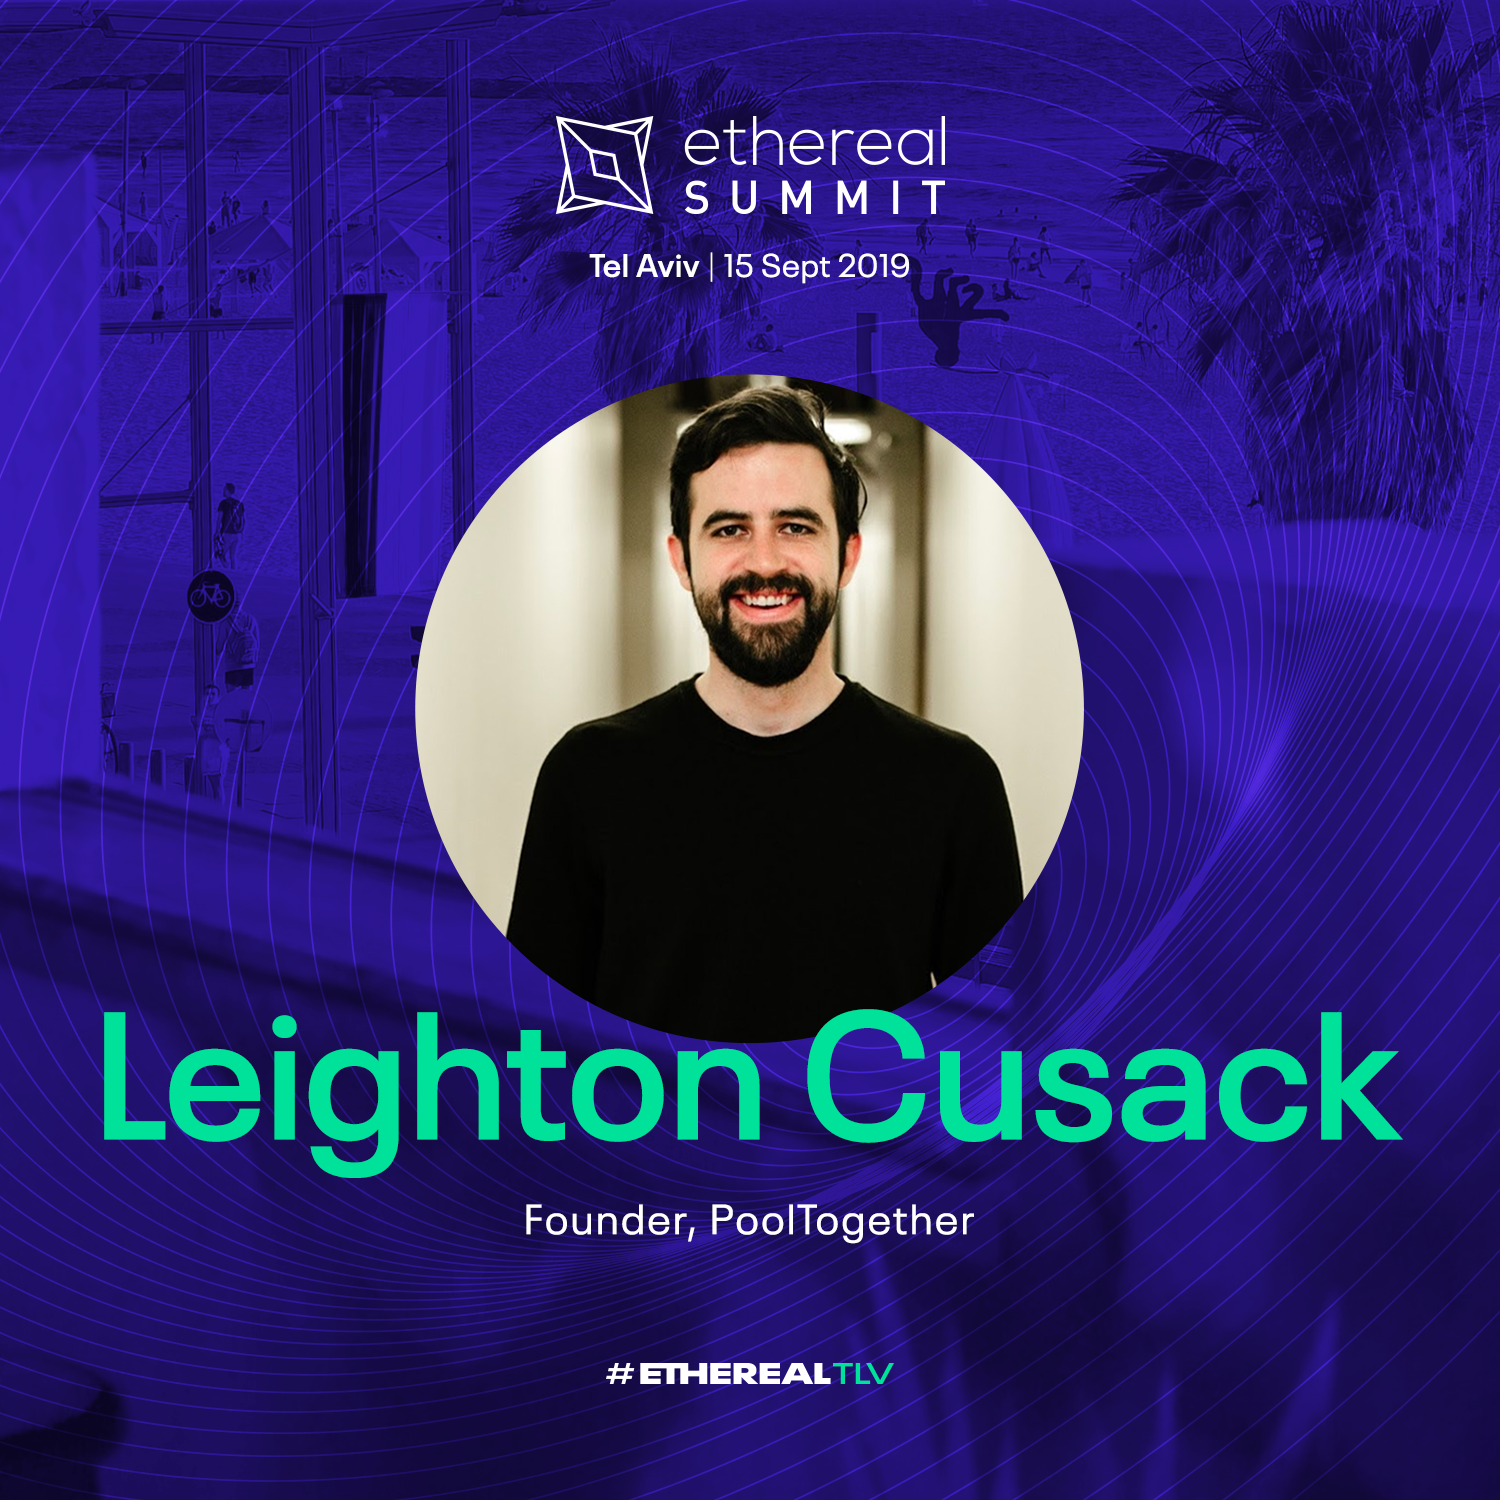 ethereal-tlv-2019-speaker-cards-square-leighton-cusack.png